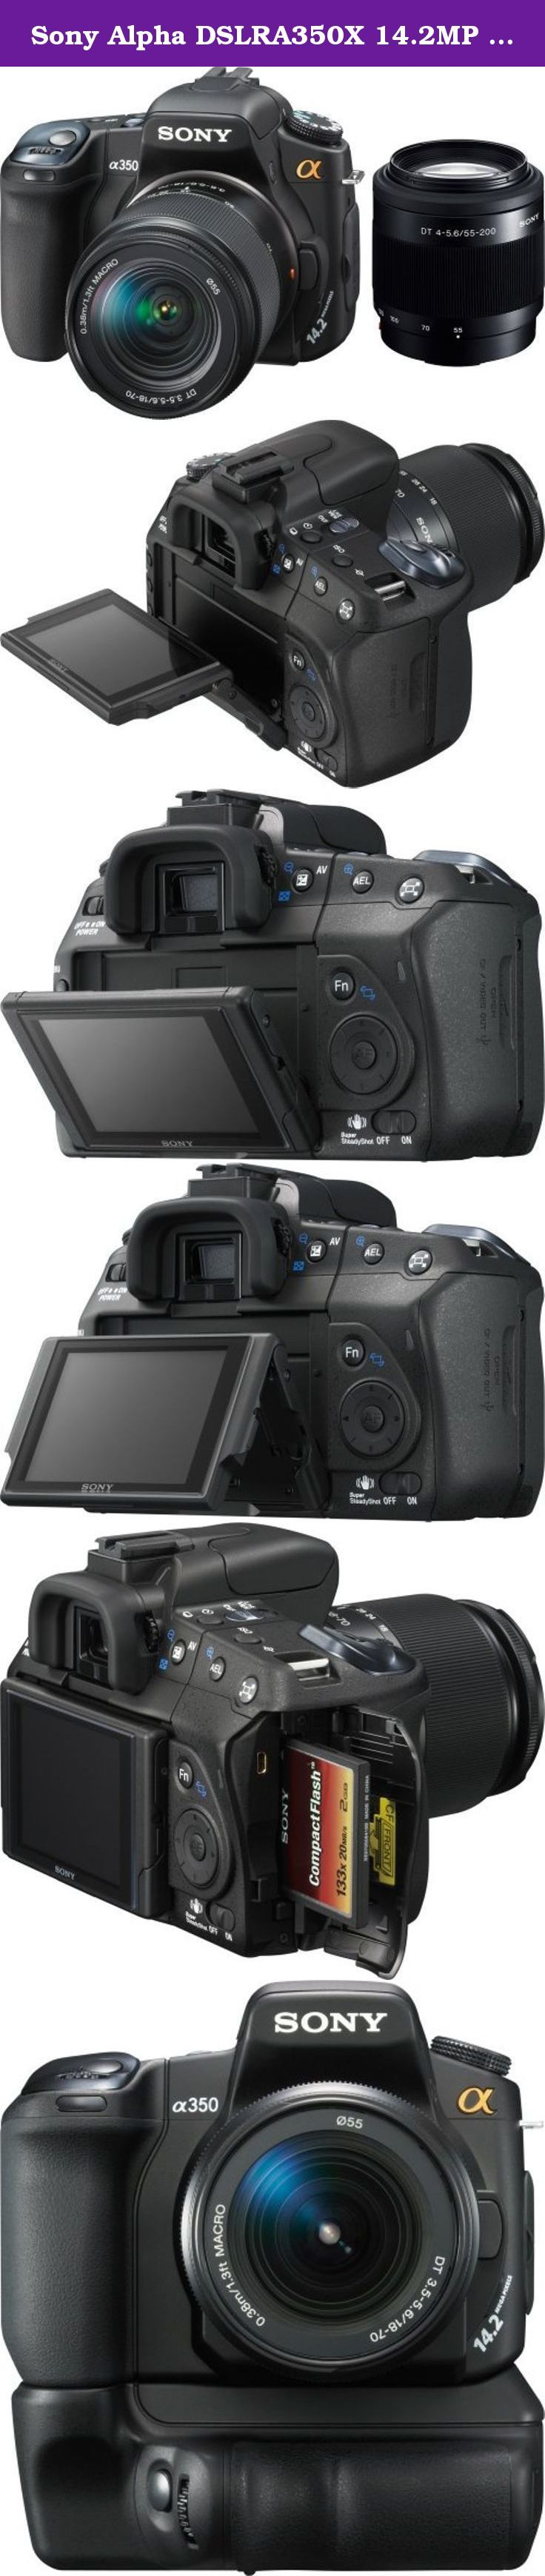 Sony Alpha DSLRA350X 14.2MP Digital SLR Camera with Super SteadyShot Image Stabilization with DT 18-70mm f/3.5-5.6 & DT 55-200mm f/4-5.6 Zoom Lenses. With incredible 14.2 MP detail, Sony¿s ¿ (alpha) DSLR-A350 raises the standard of excellence for step-up digital photographers shooting both family memories and fine-art photos. Live Preview in a large 2.7¿ LCD screen links you and your subject -- and you¿ll have special features like super-quick AF response, continuous shooting at 2 fps…